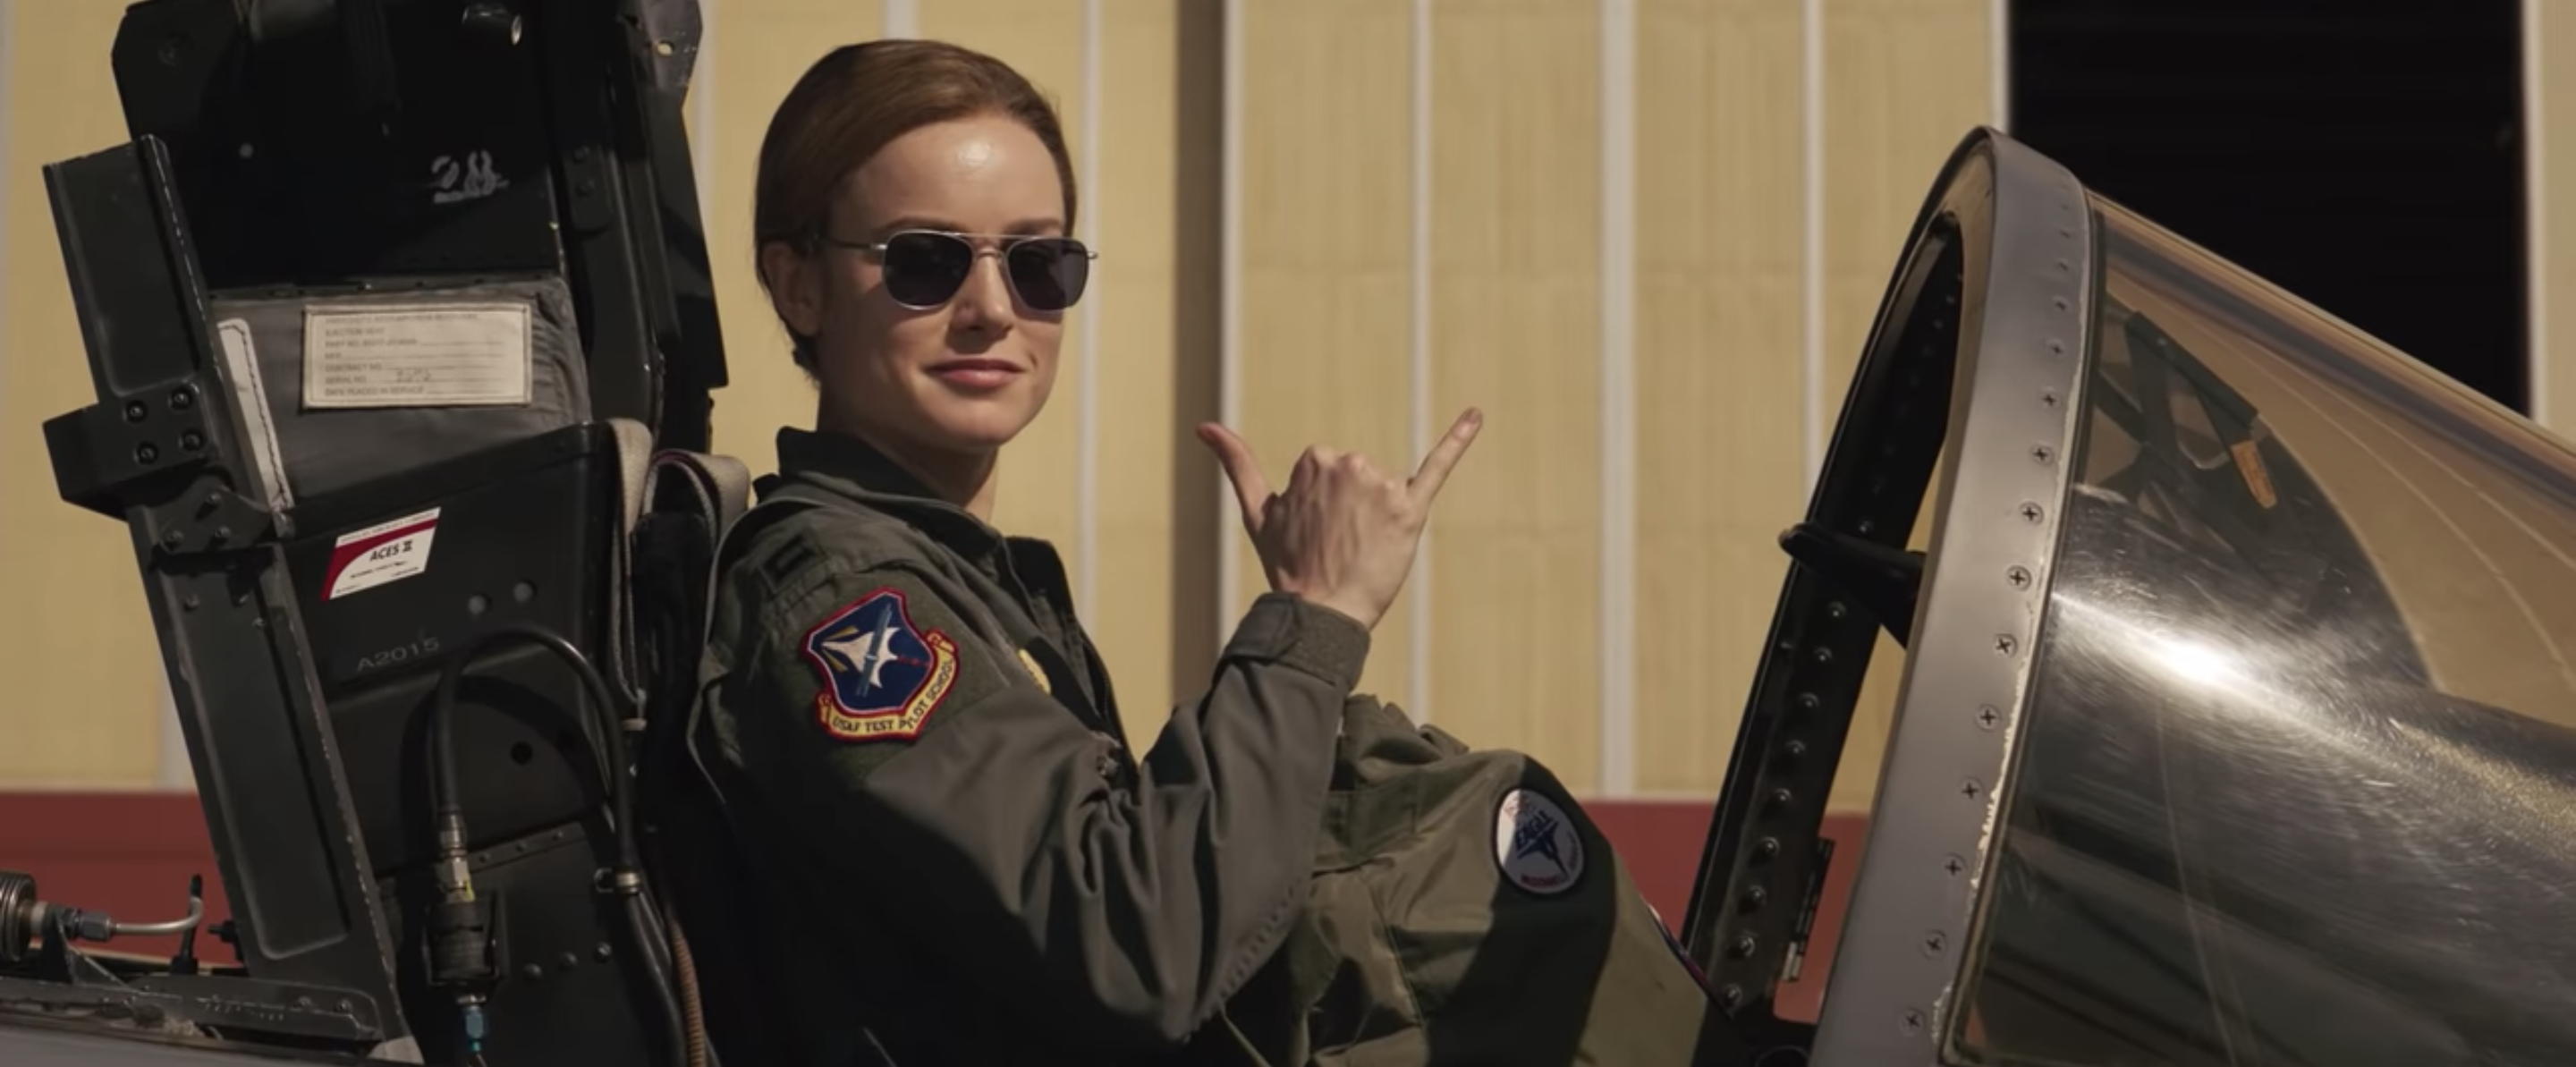 trailer di Captain Marvel | Collater.al